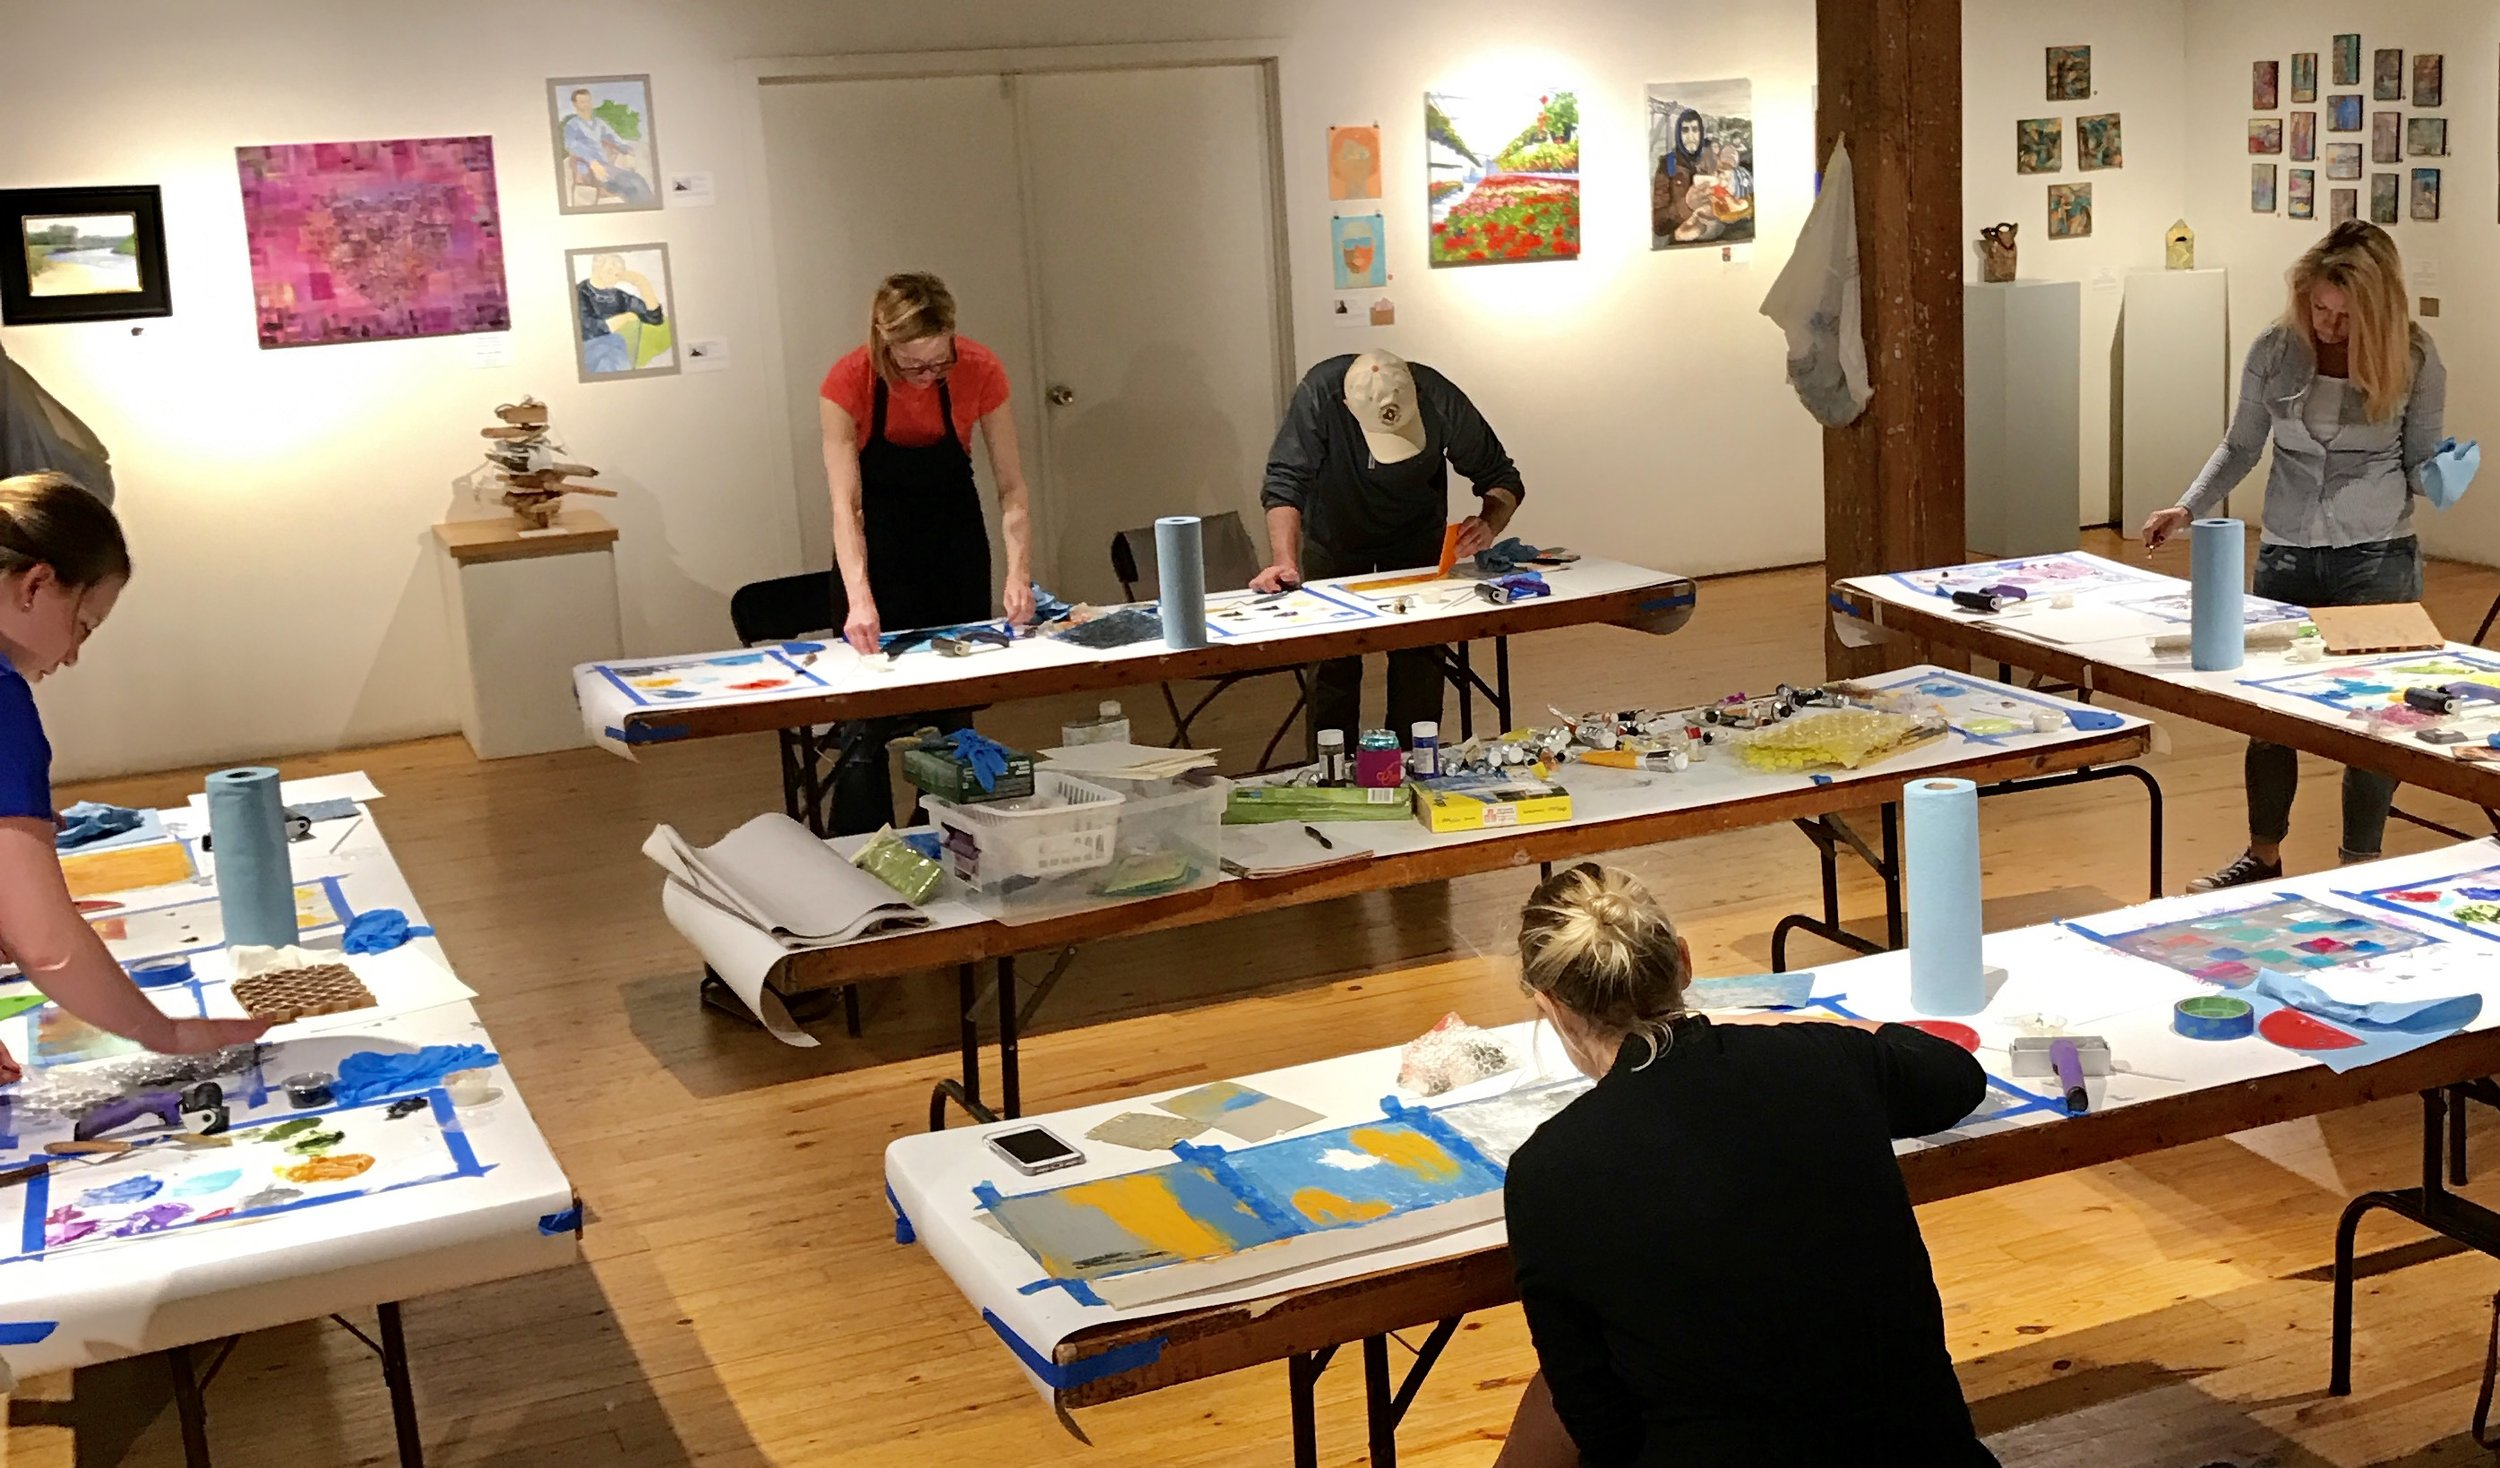 A recent workshop, held in gallery space at Hot Shops Art Center, Omaha, Neb.